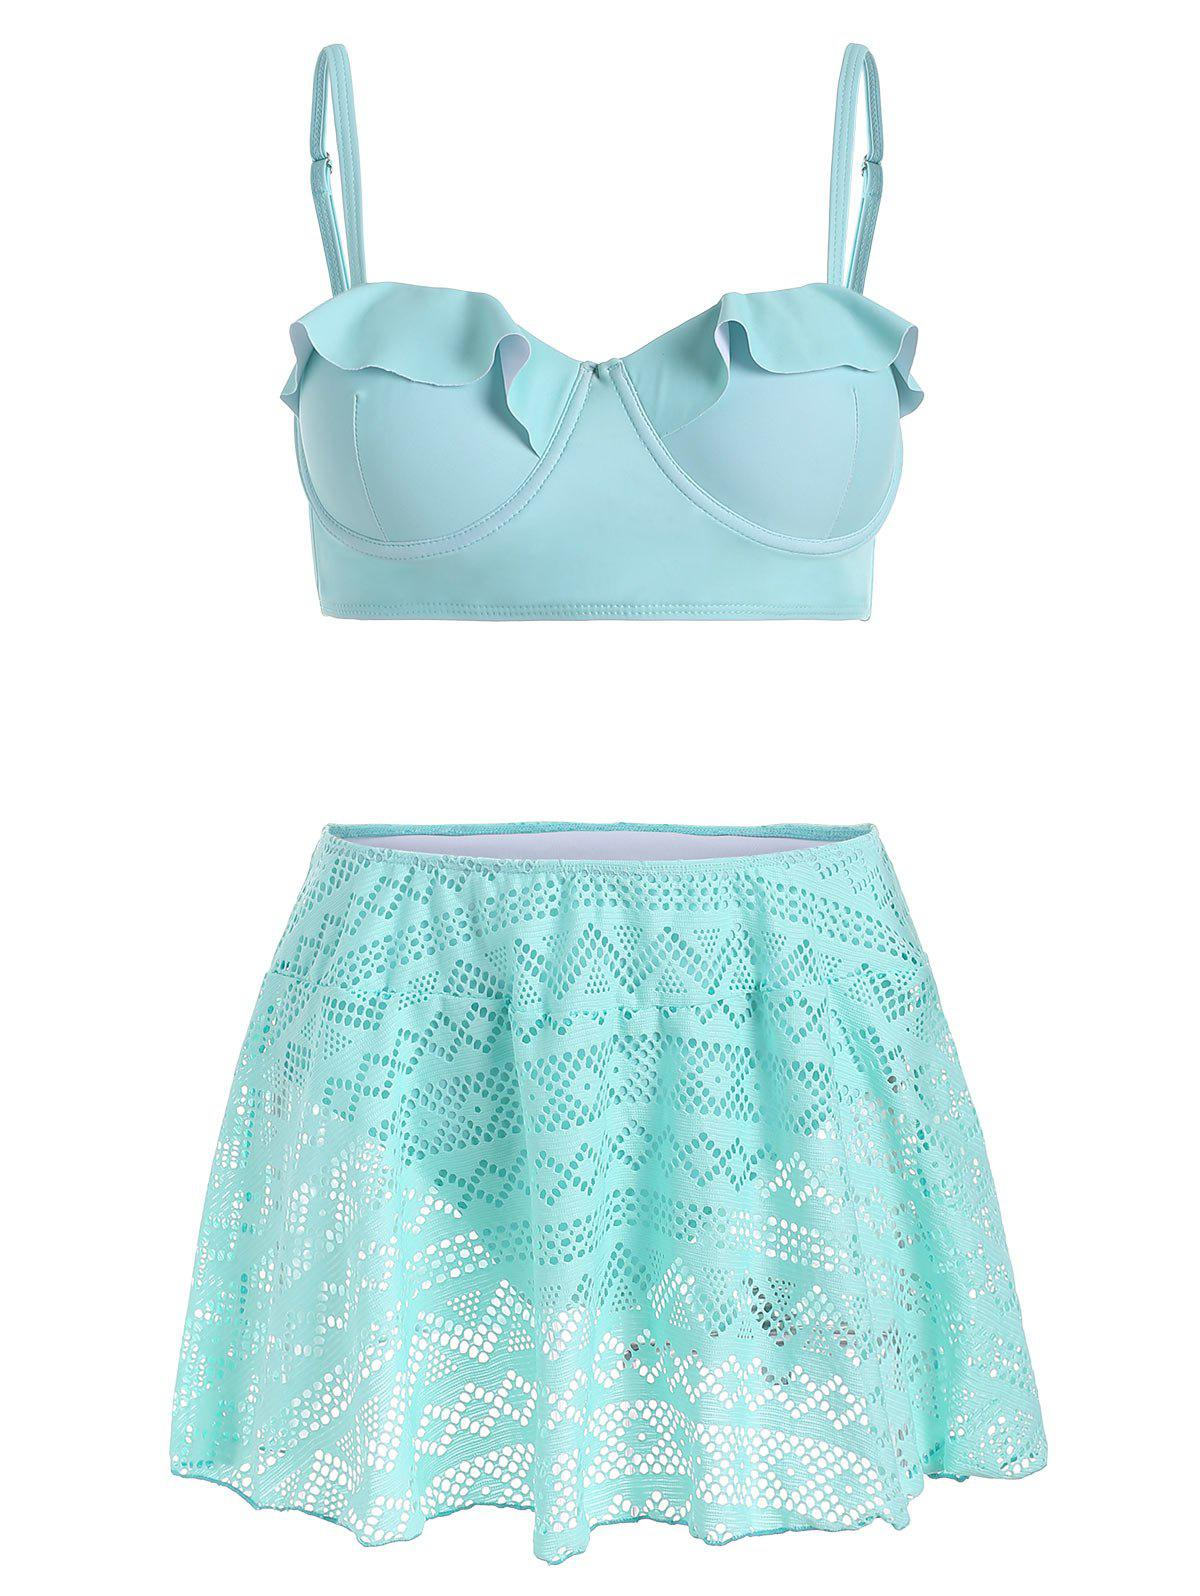 Ruffles Underwire Skirted Bikini Swimsuit - LIGHT AQUAMARINE L